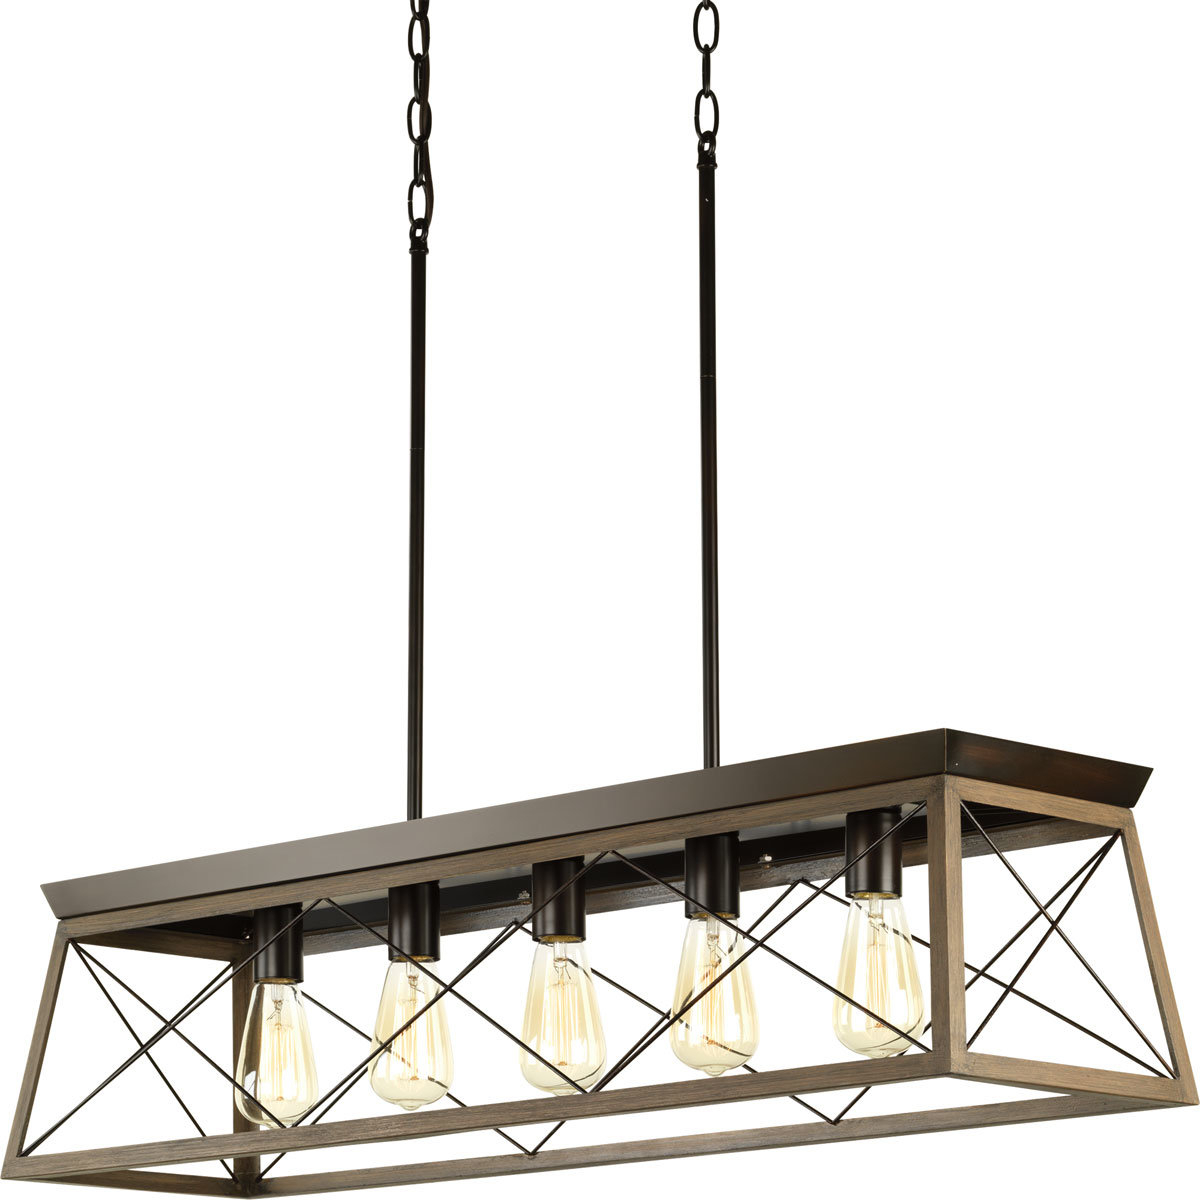 Bouvet 5 Light Kitchen Island Linear Pendants Within Most Current Delon 5 Light Kitchen Island Linear Pendant (View 8 of 20)